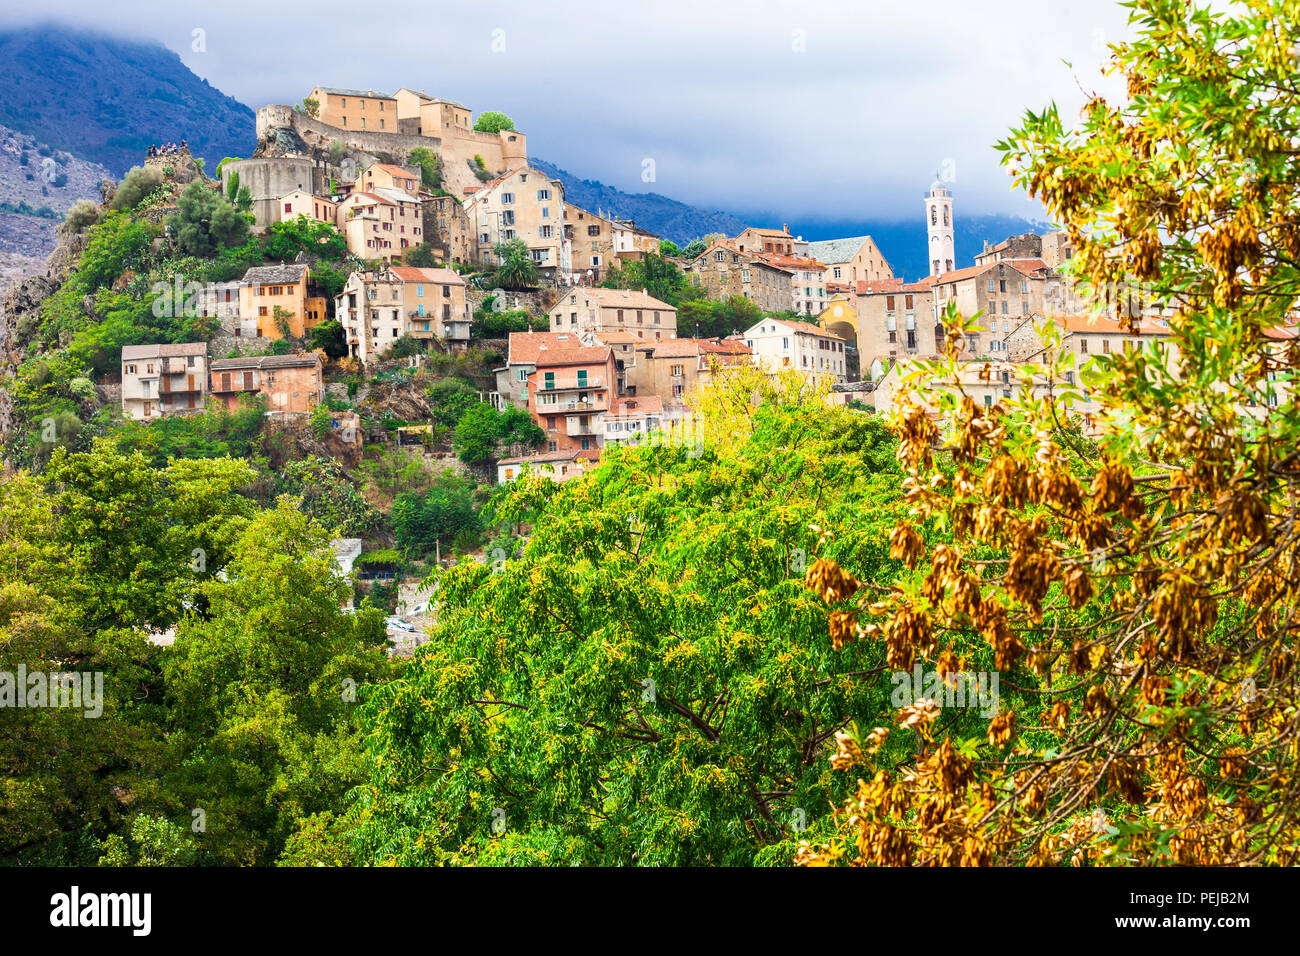 Impressive Corte village,view with old citadel and mountains,Corse,France. - Stock Image